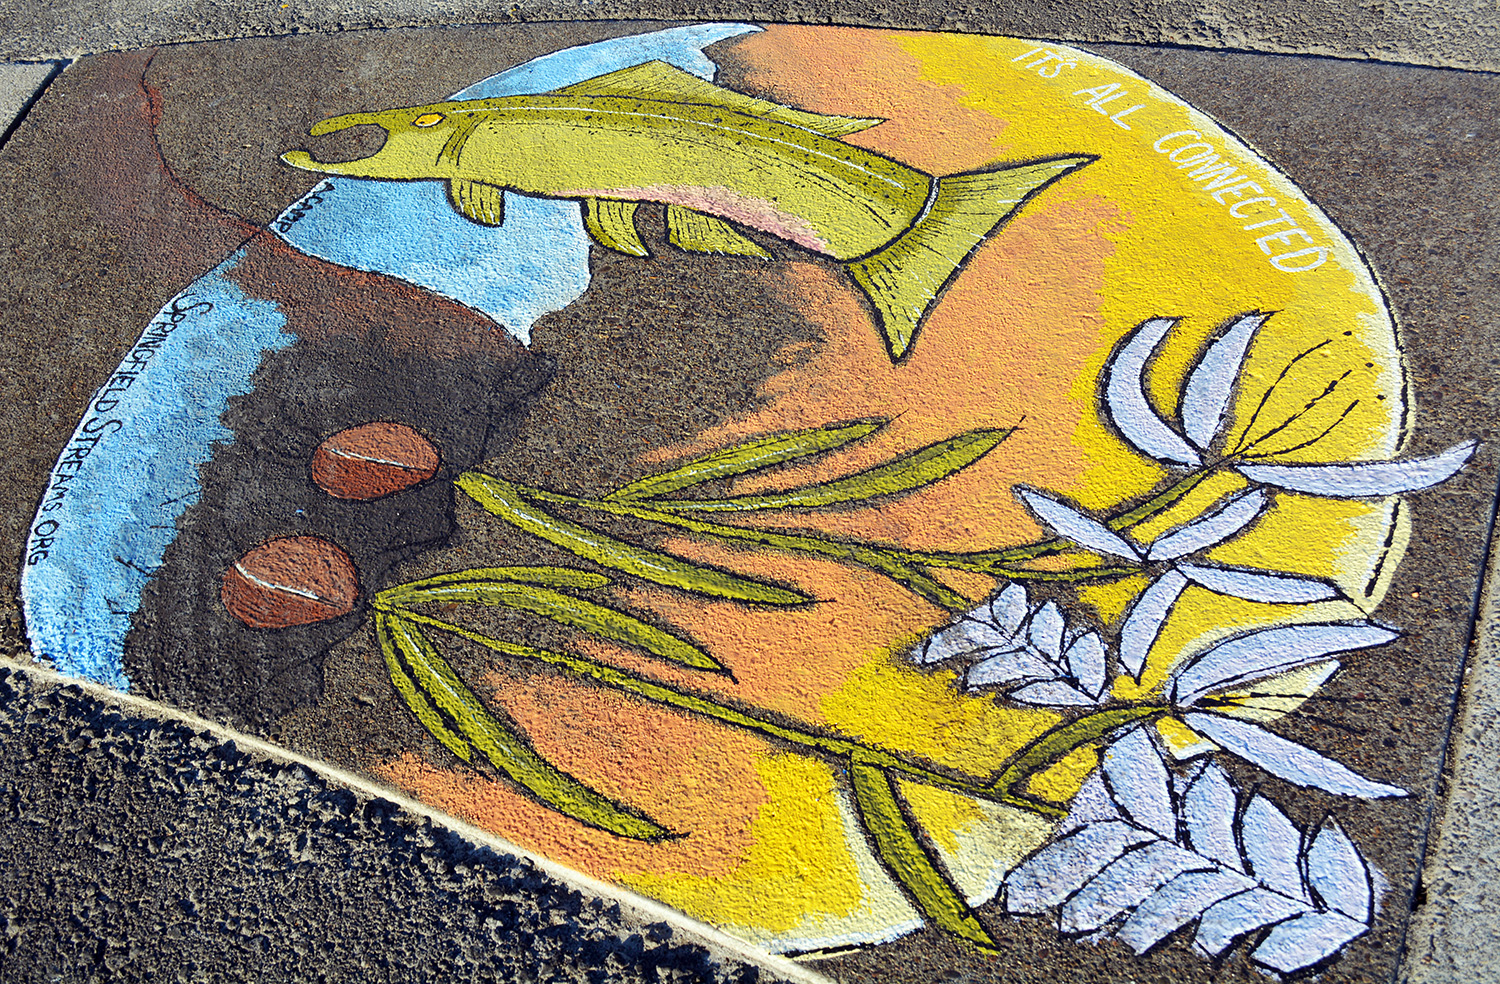 2018 UpStream Mural by Allie Camp